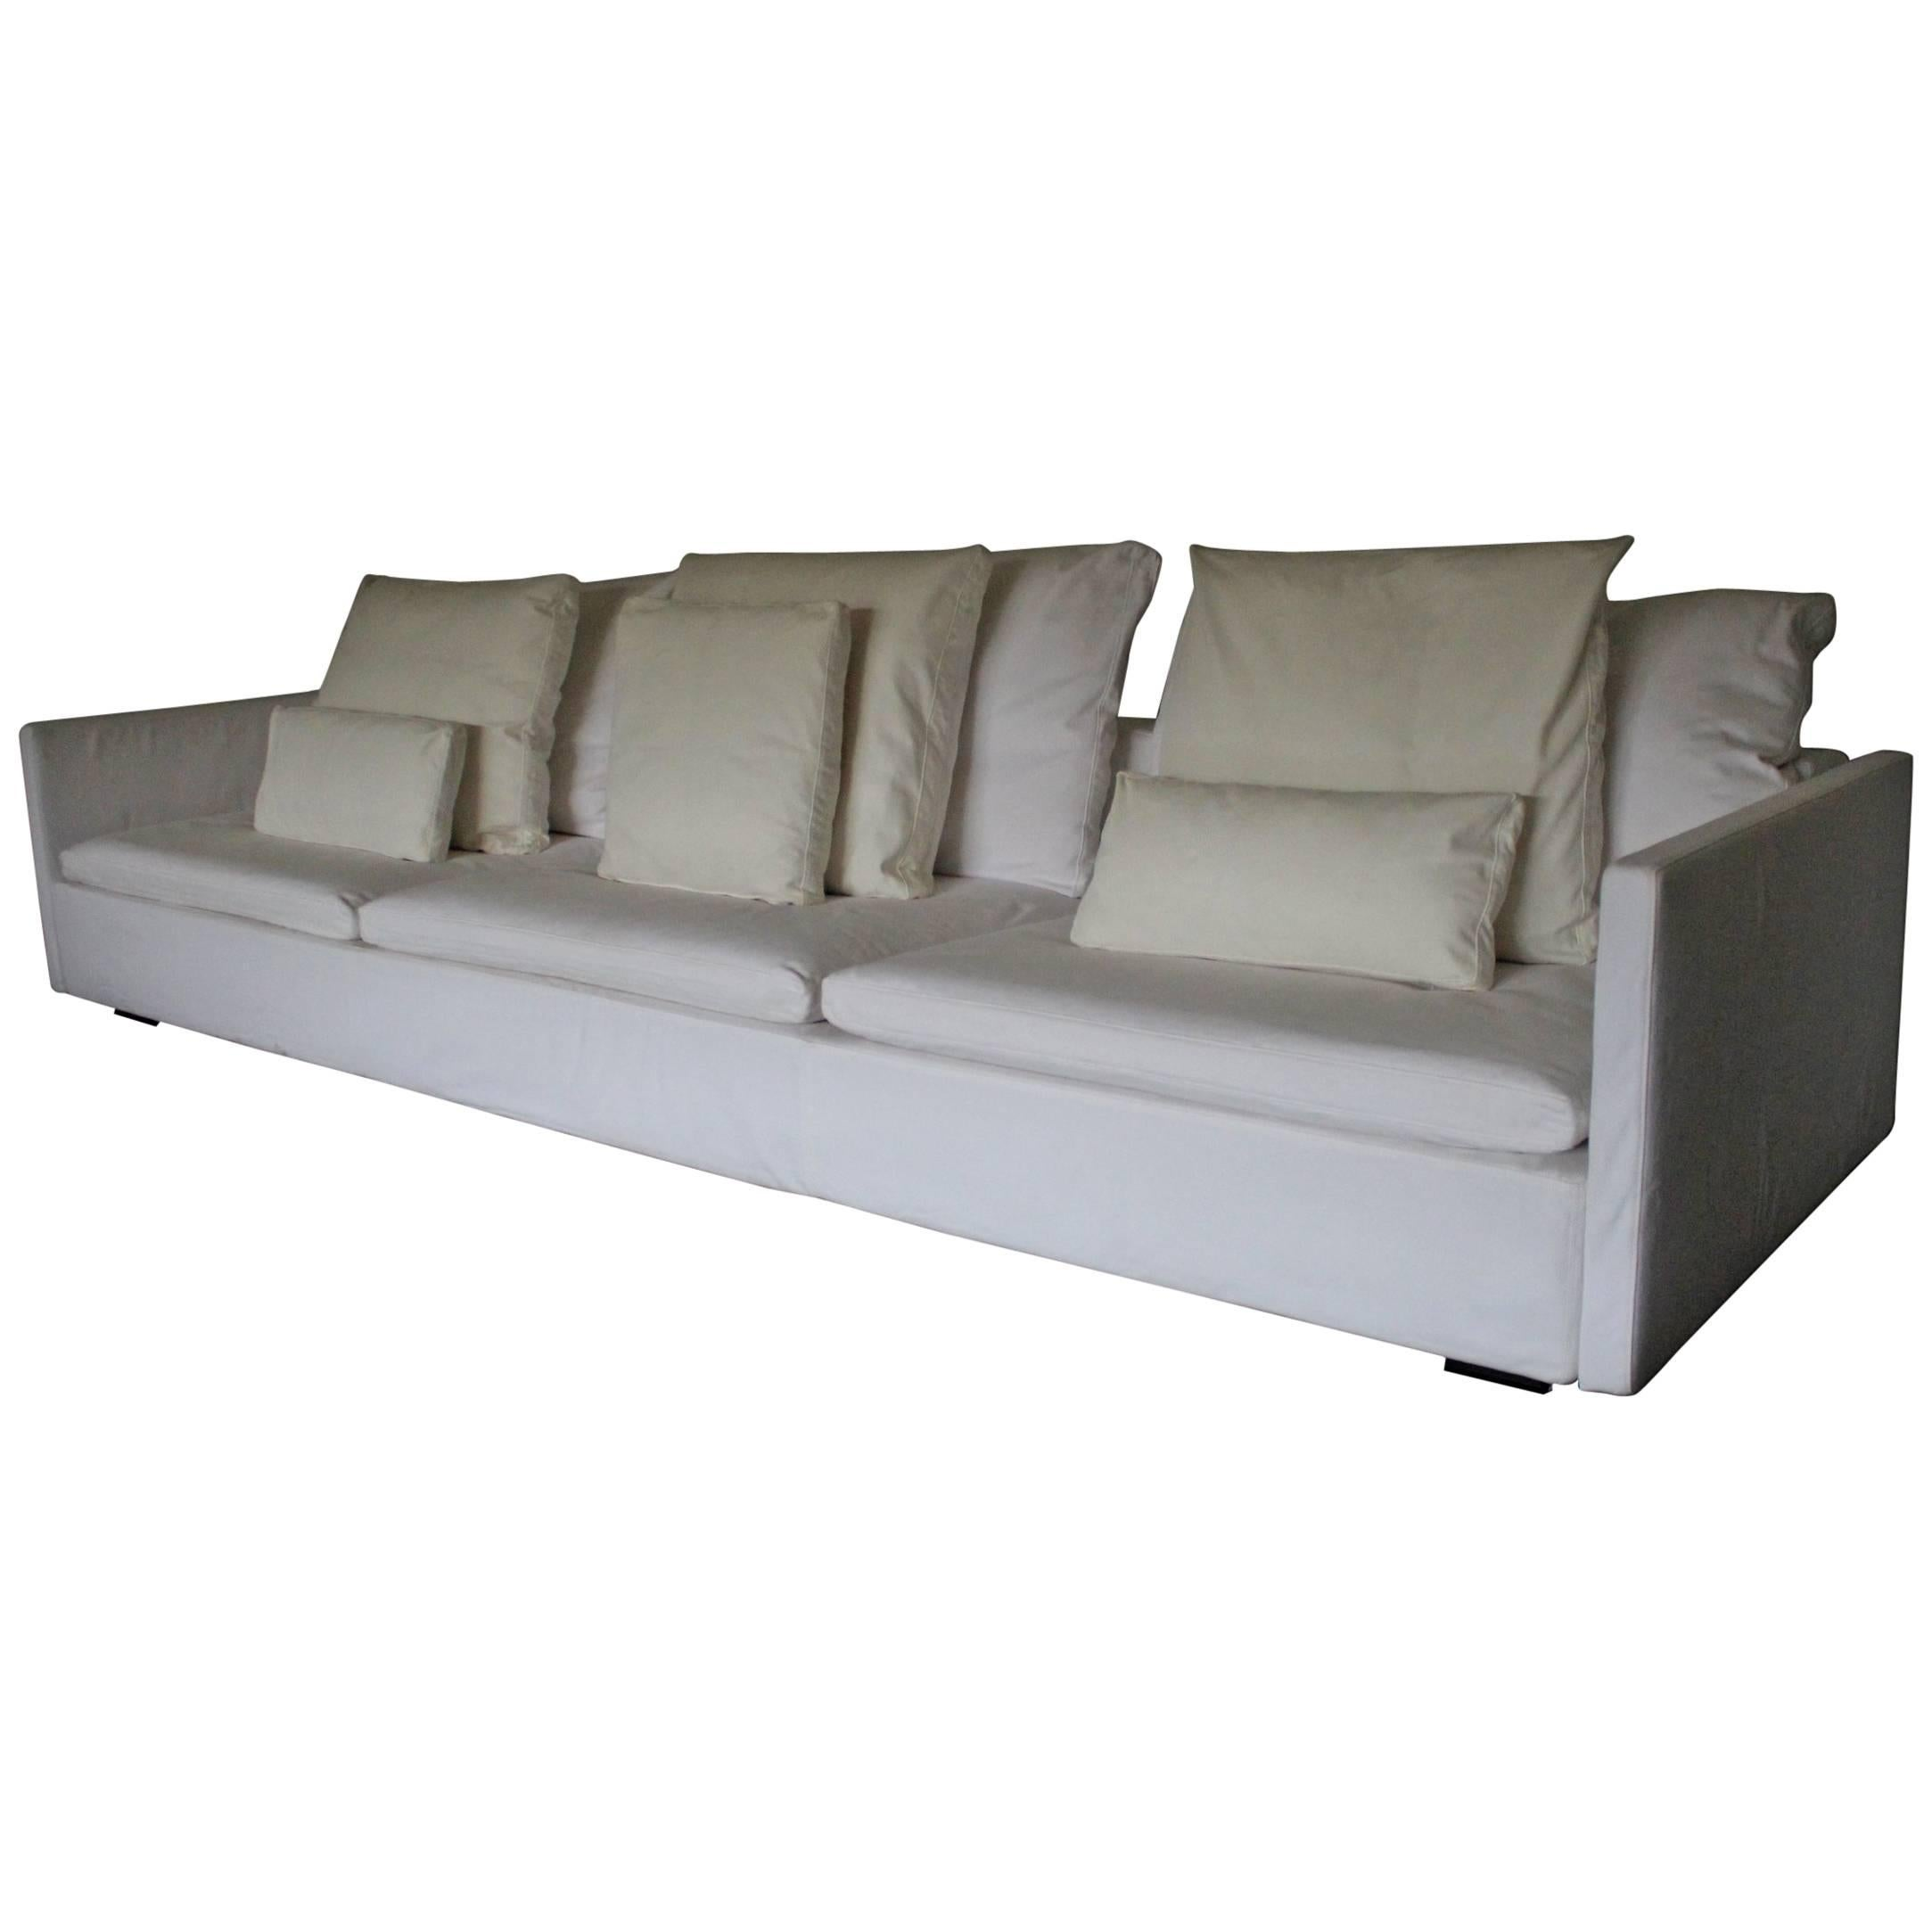 Flexform U201cResortu201d Large Three Seat Sofa In White Woven Linen Fabric